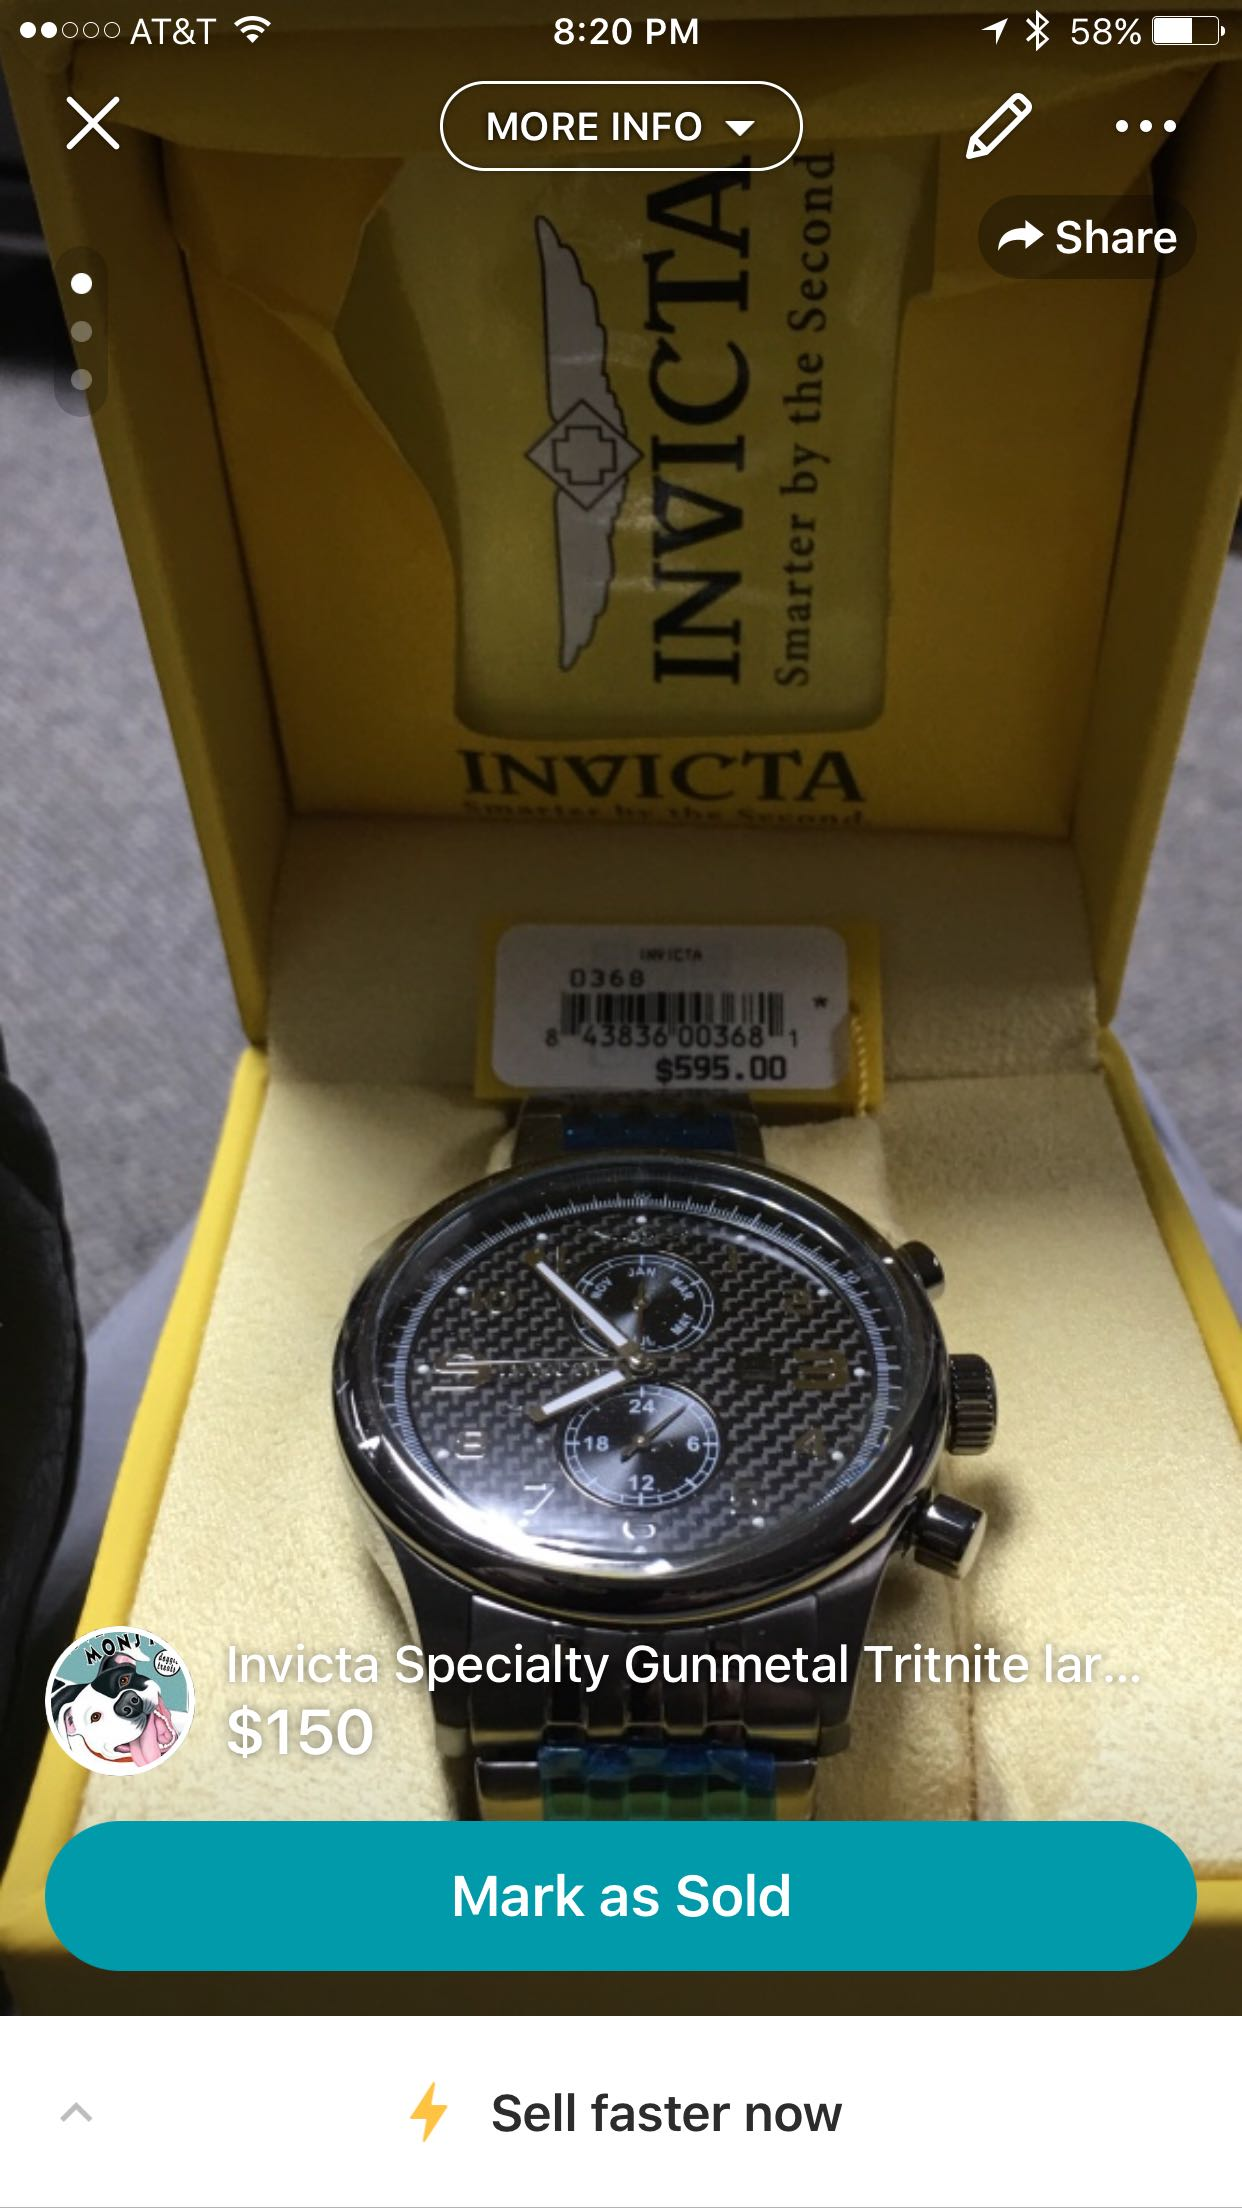 Invicta Specialty Gunmetal Tritnite large face